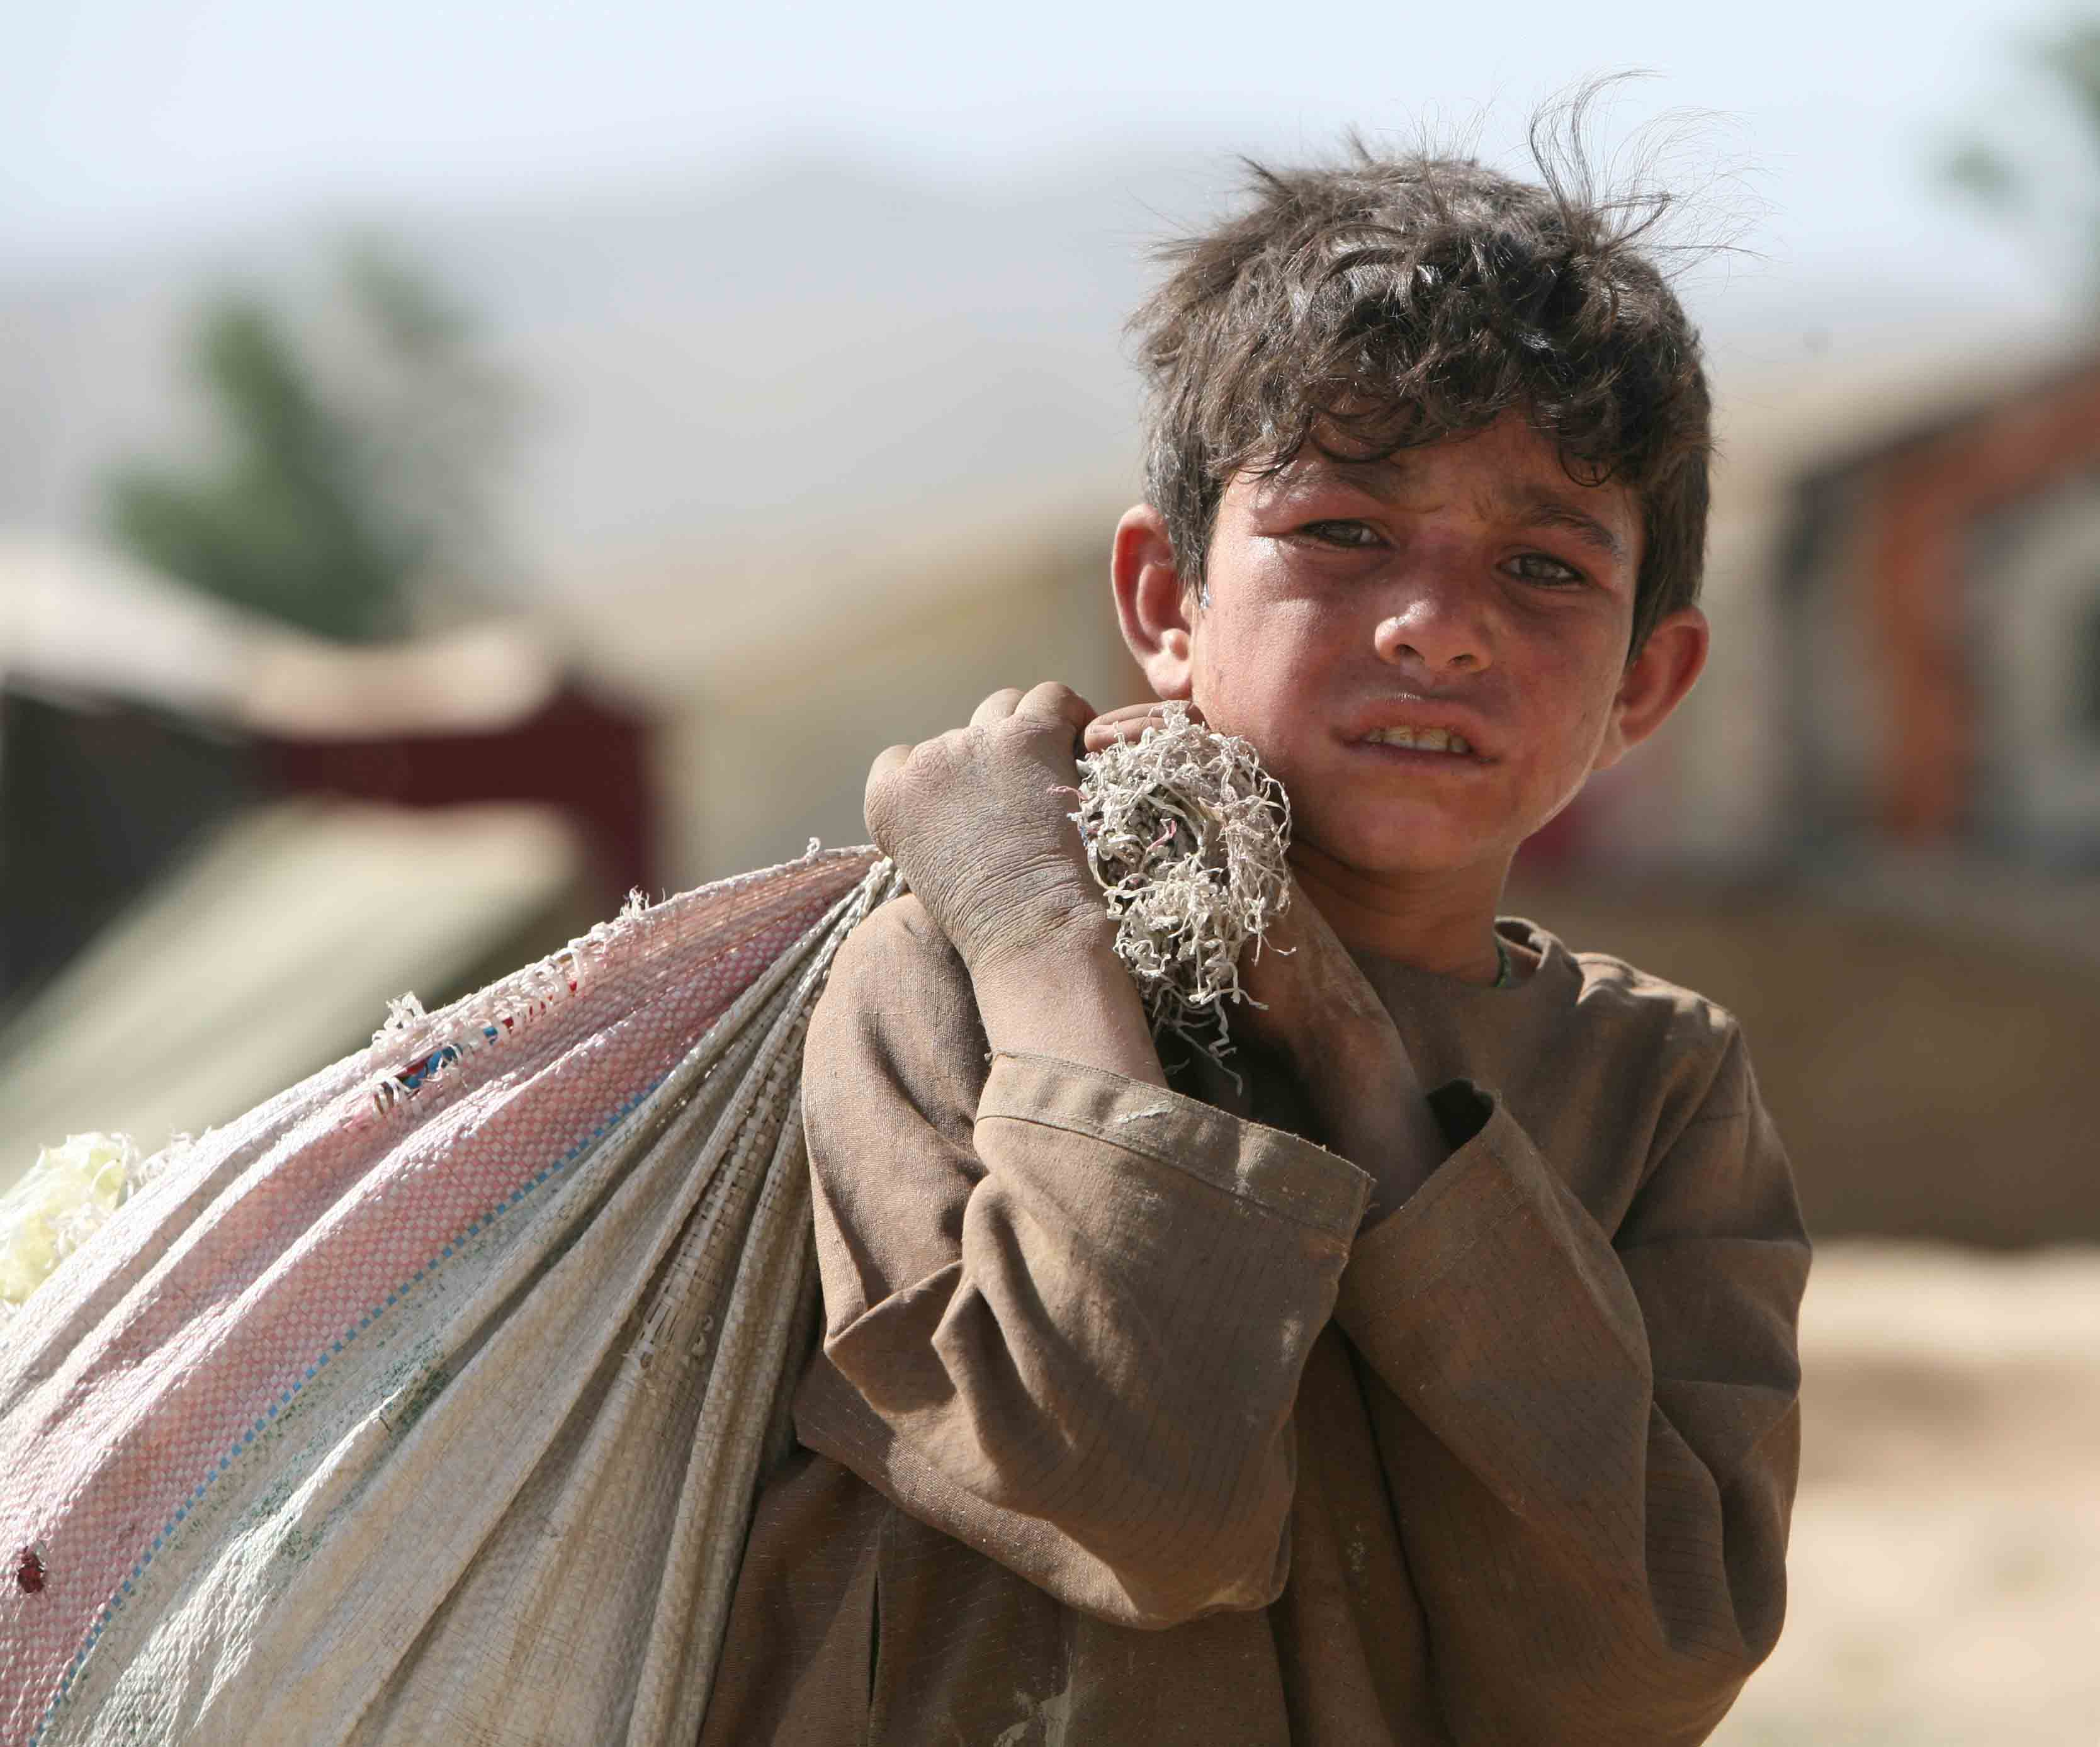 A young boy carries a heavy bag in an IDP camp in Kabul, Afghanistan June 2008. The upsurge of fighting in southern Afghanistan during 2006 has compelled tens of thousands of people to flee their homes to seek temporary refuge with relatives and friends i